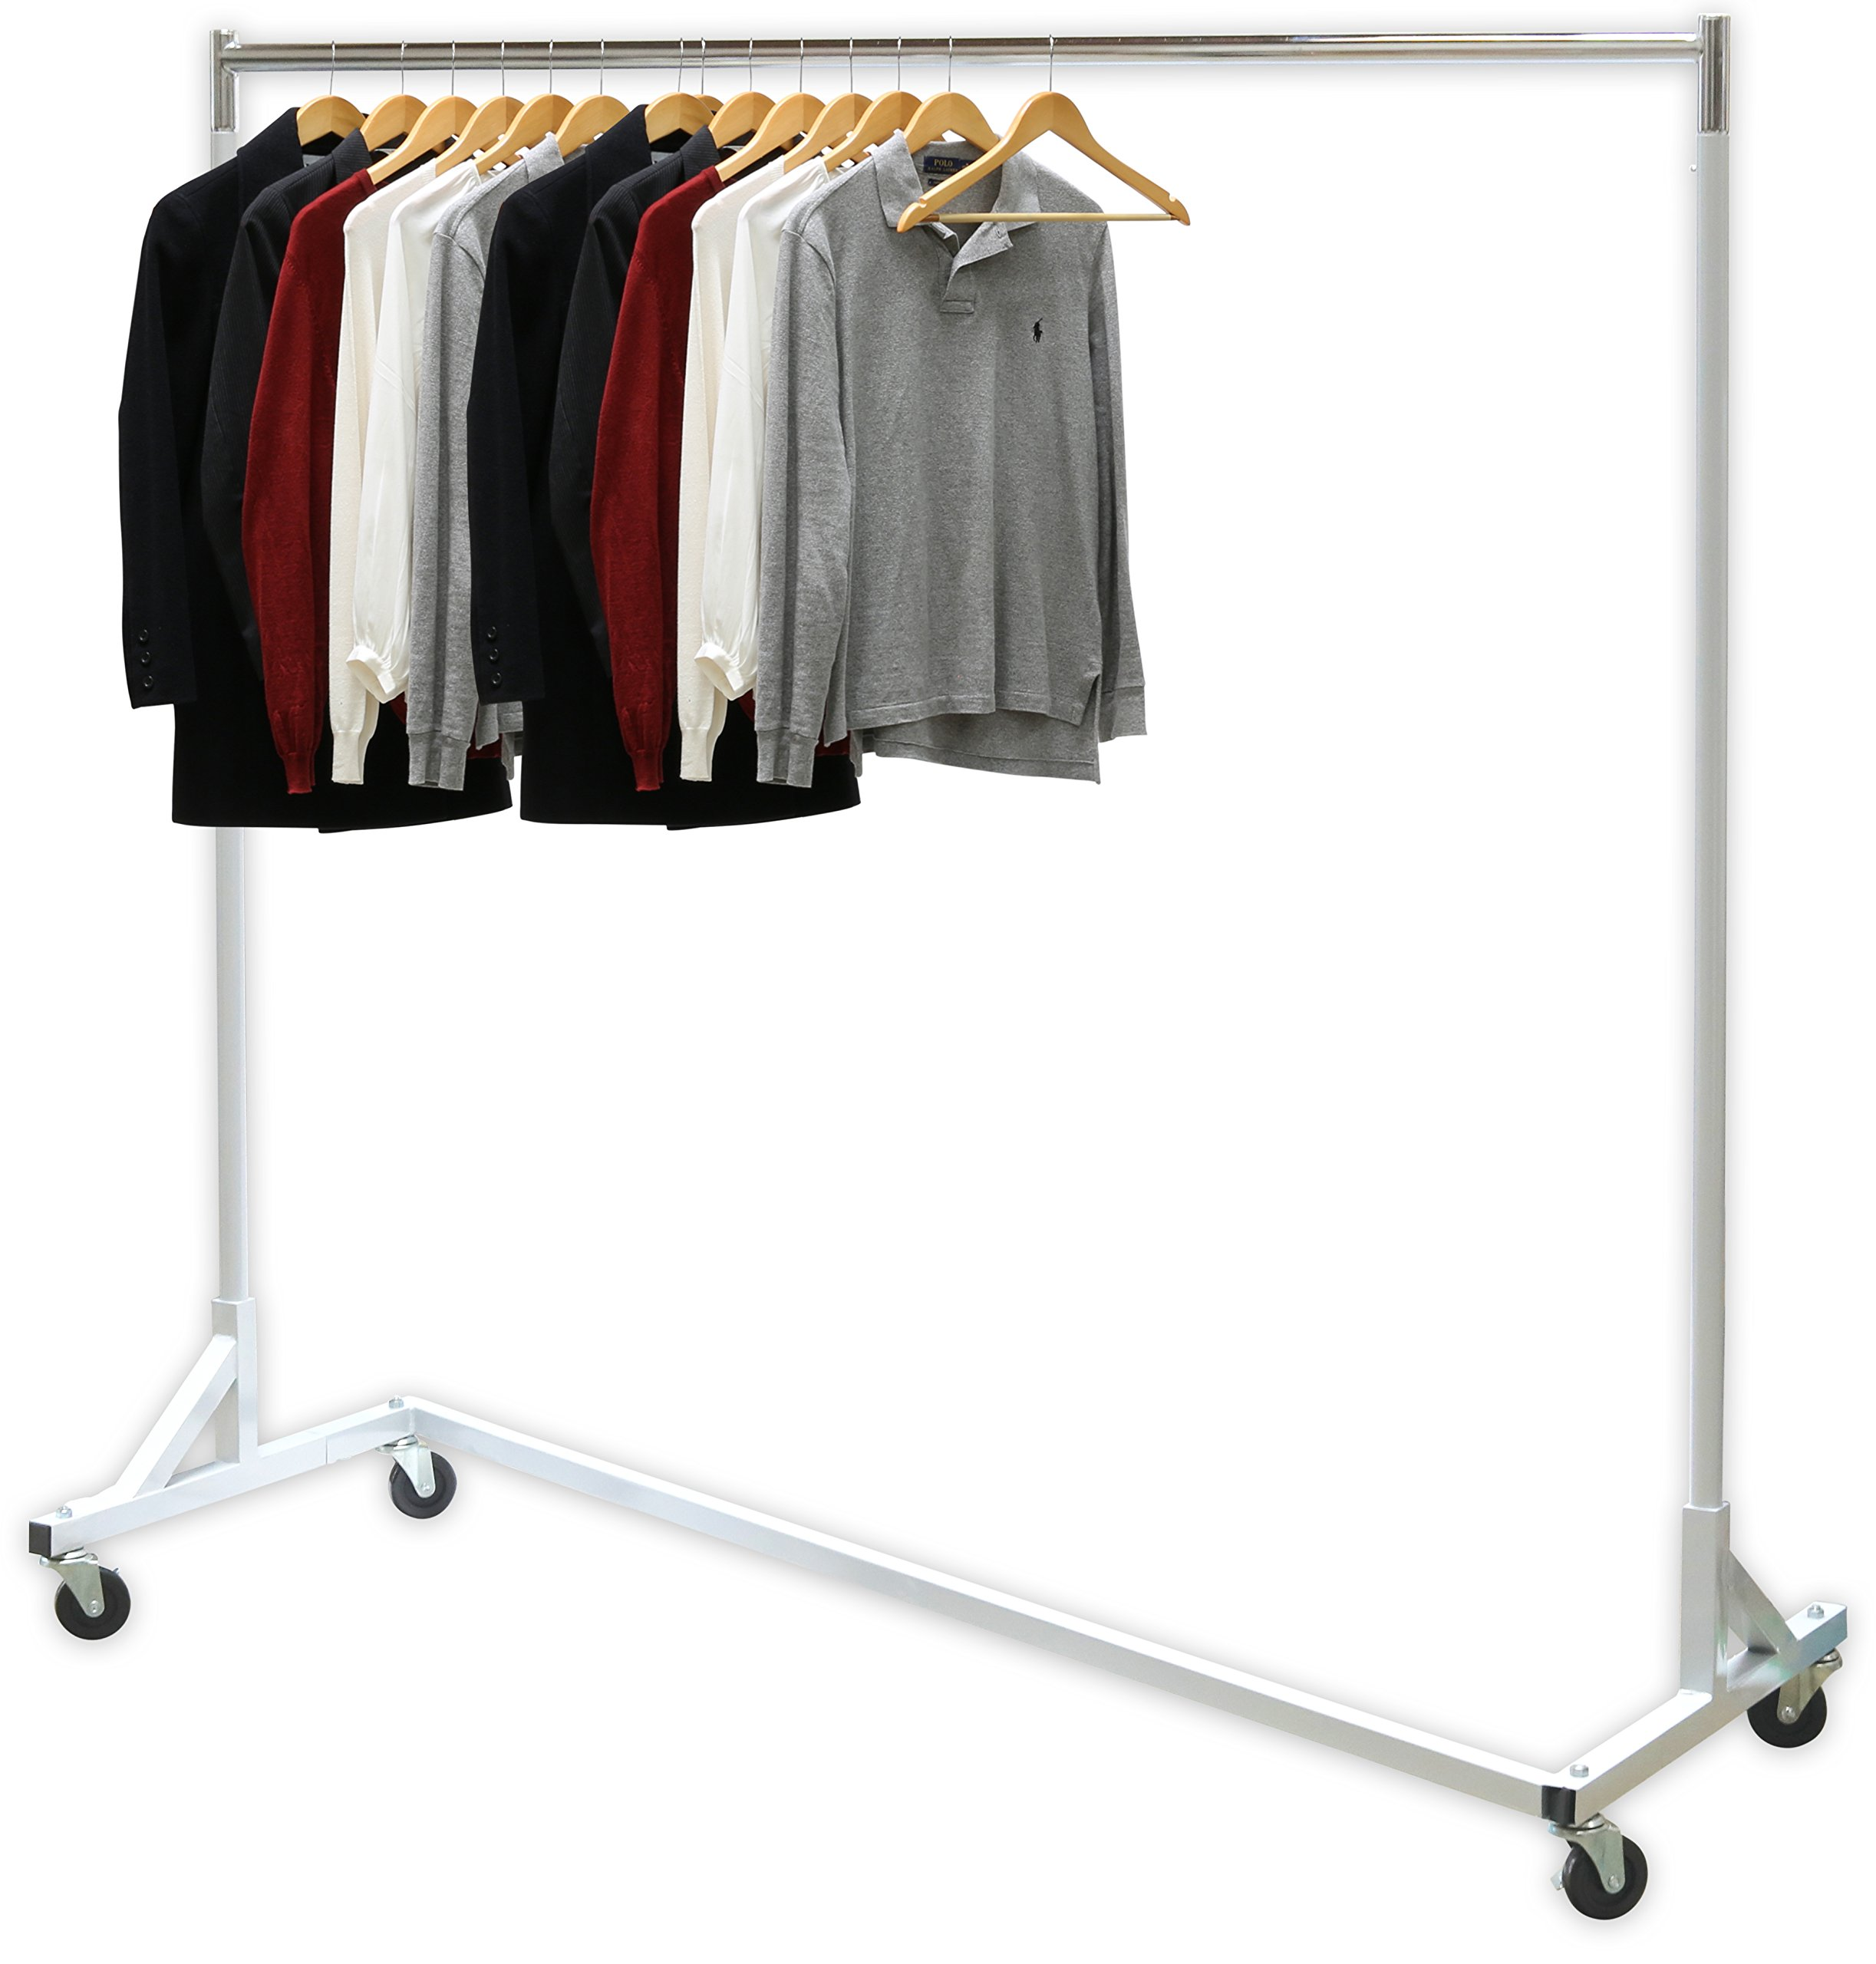 enclume z bk rectangle clearance rack category essentials product